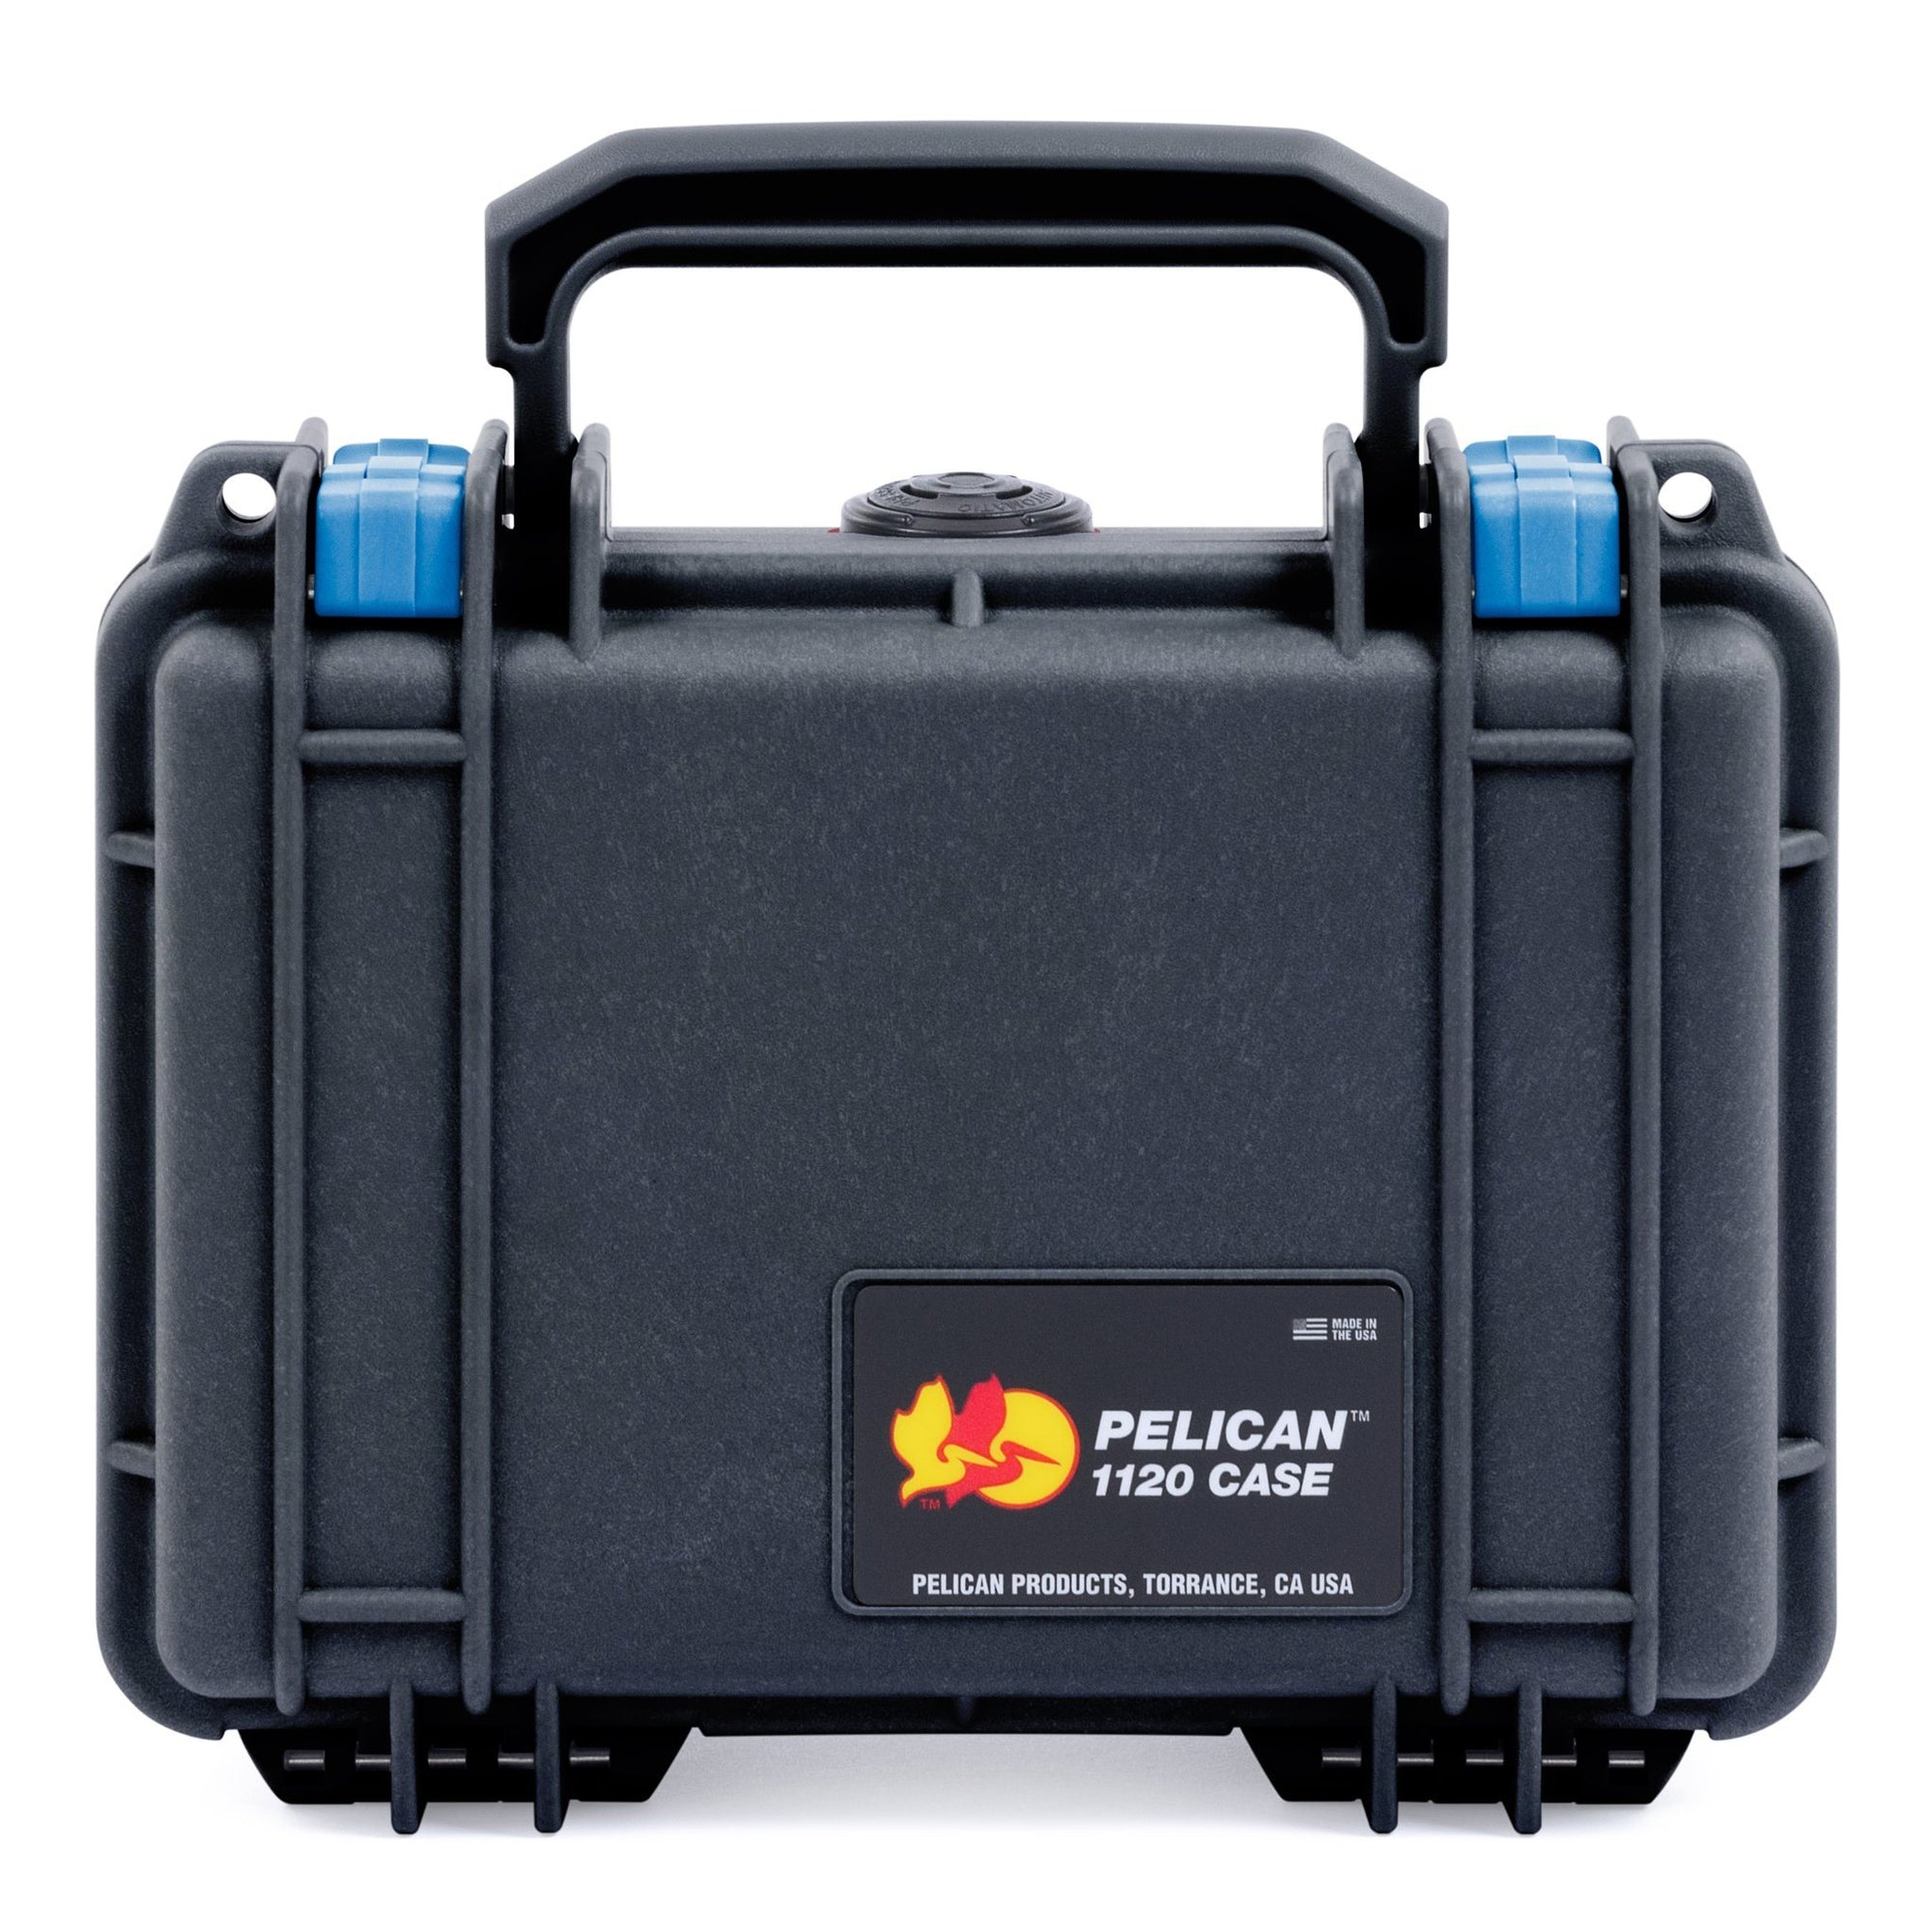 Pelican 1120 Case, Black with Blue Latches - Pelican Color Case